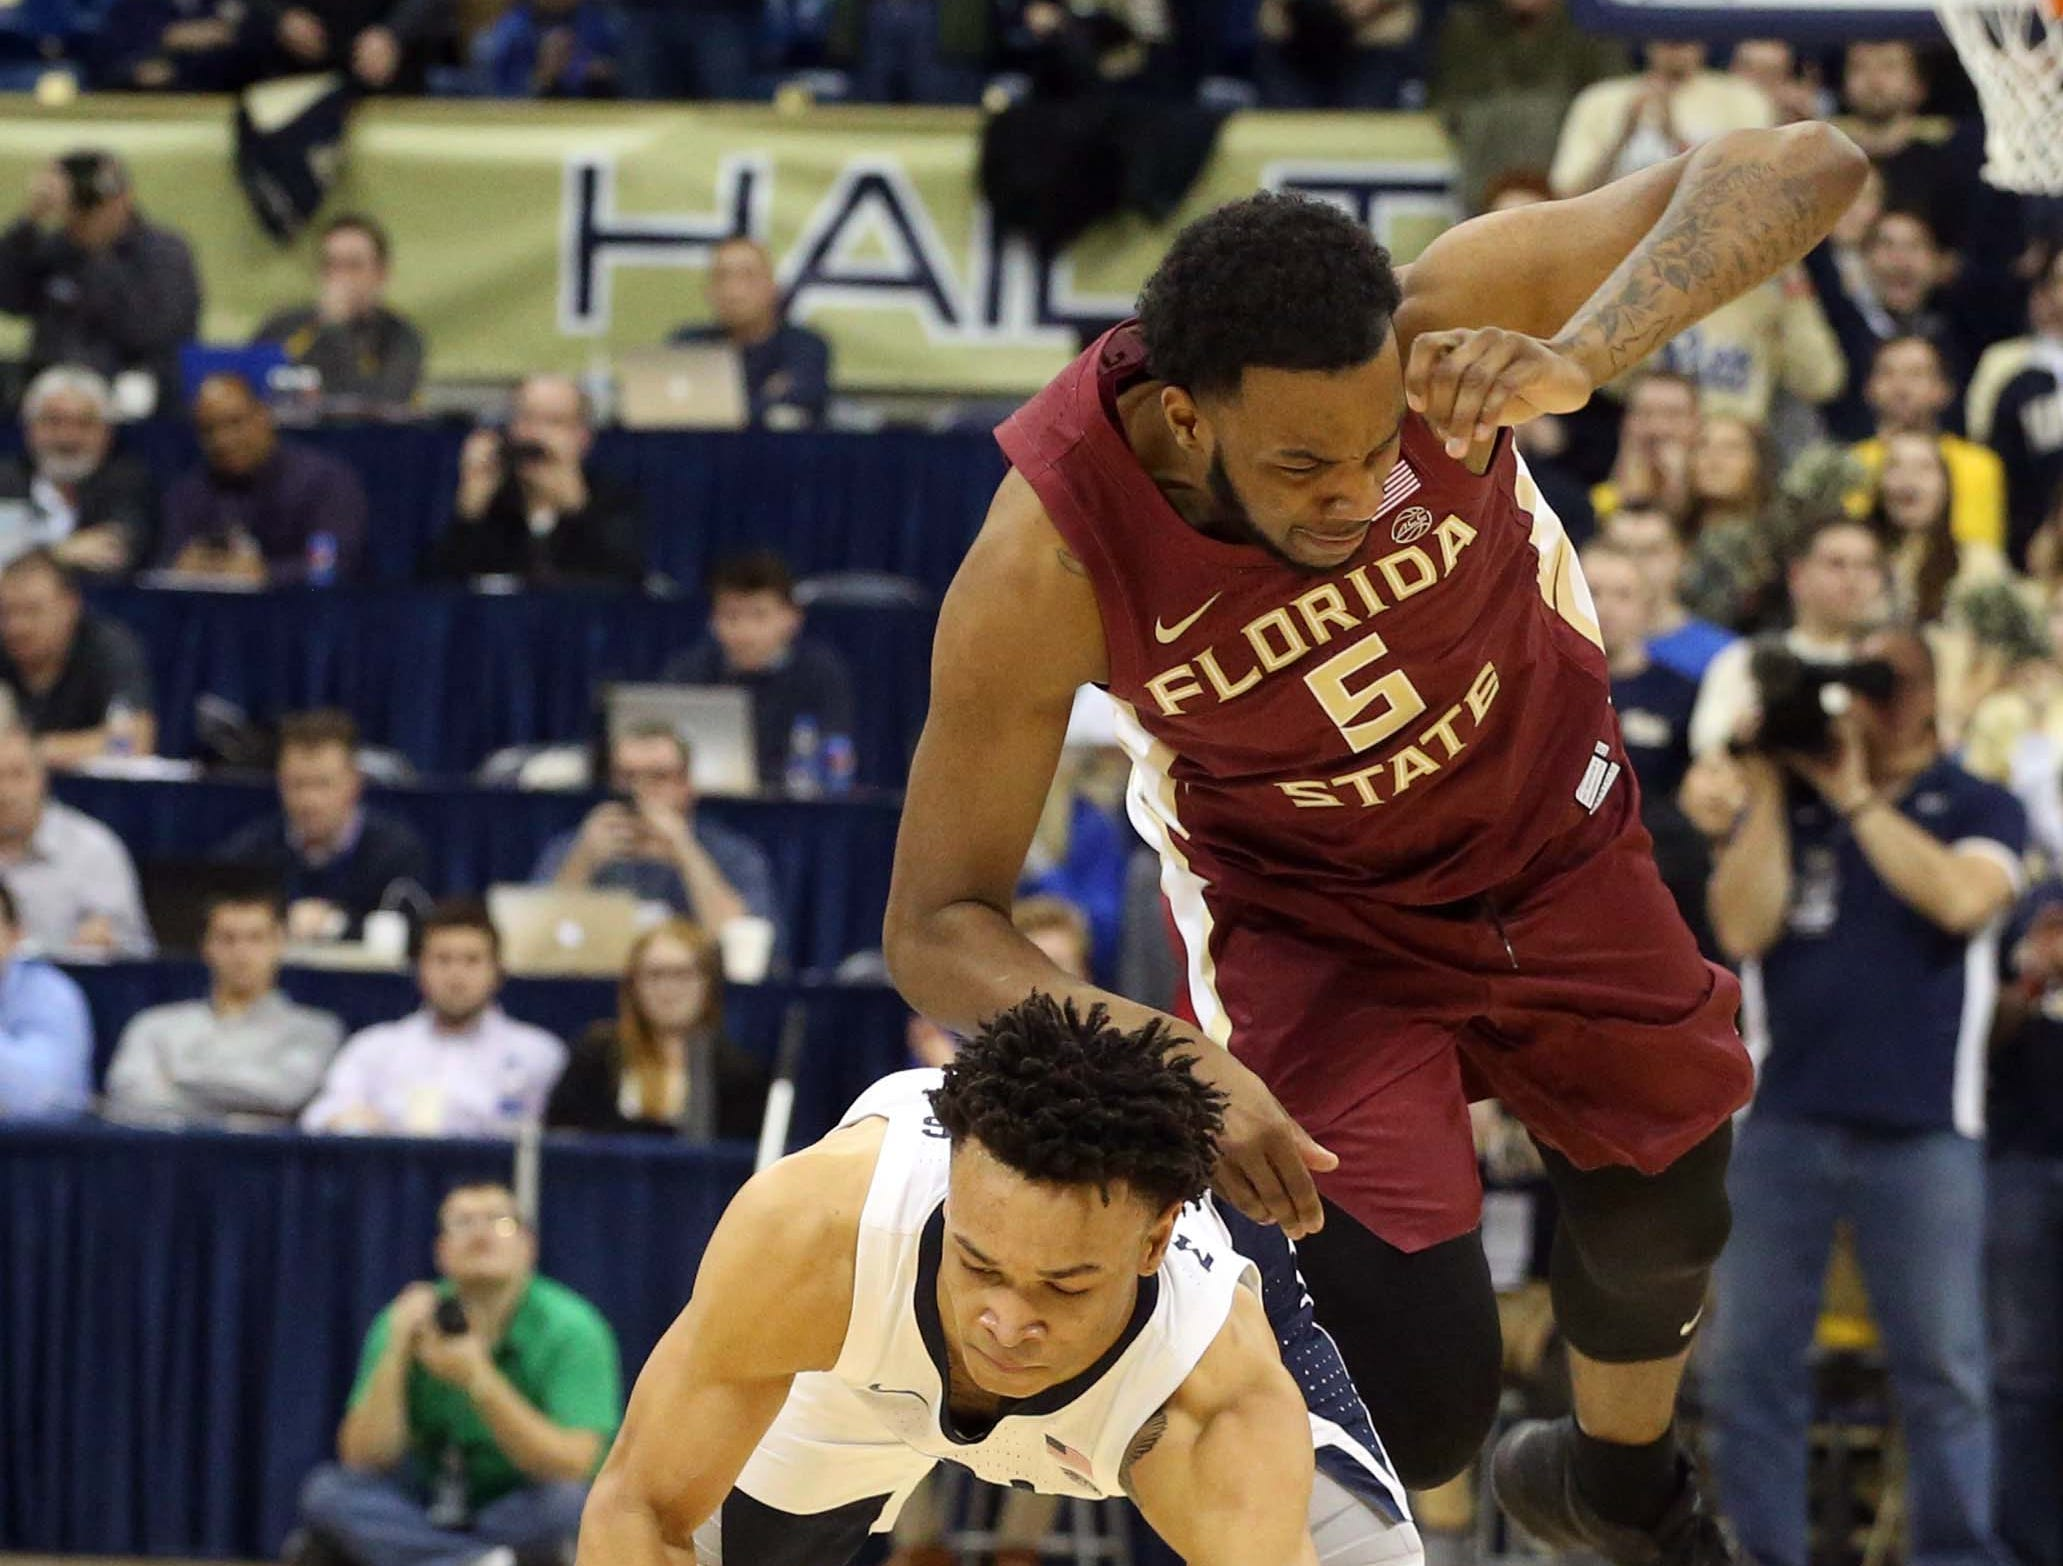 Jan 14, 2019; Pittsburgh, PA, USA; Pittsburgh Panthers guard Trey McGowens (bottom) is fouled by Florida State Seminoles guard PJ Savoy (5) during the second half at the Petersen Events Center. Pittsburgh won 75-62. Mandatory Credit: Charles LeClaire-USA TODAY Sports